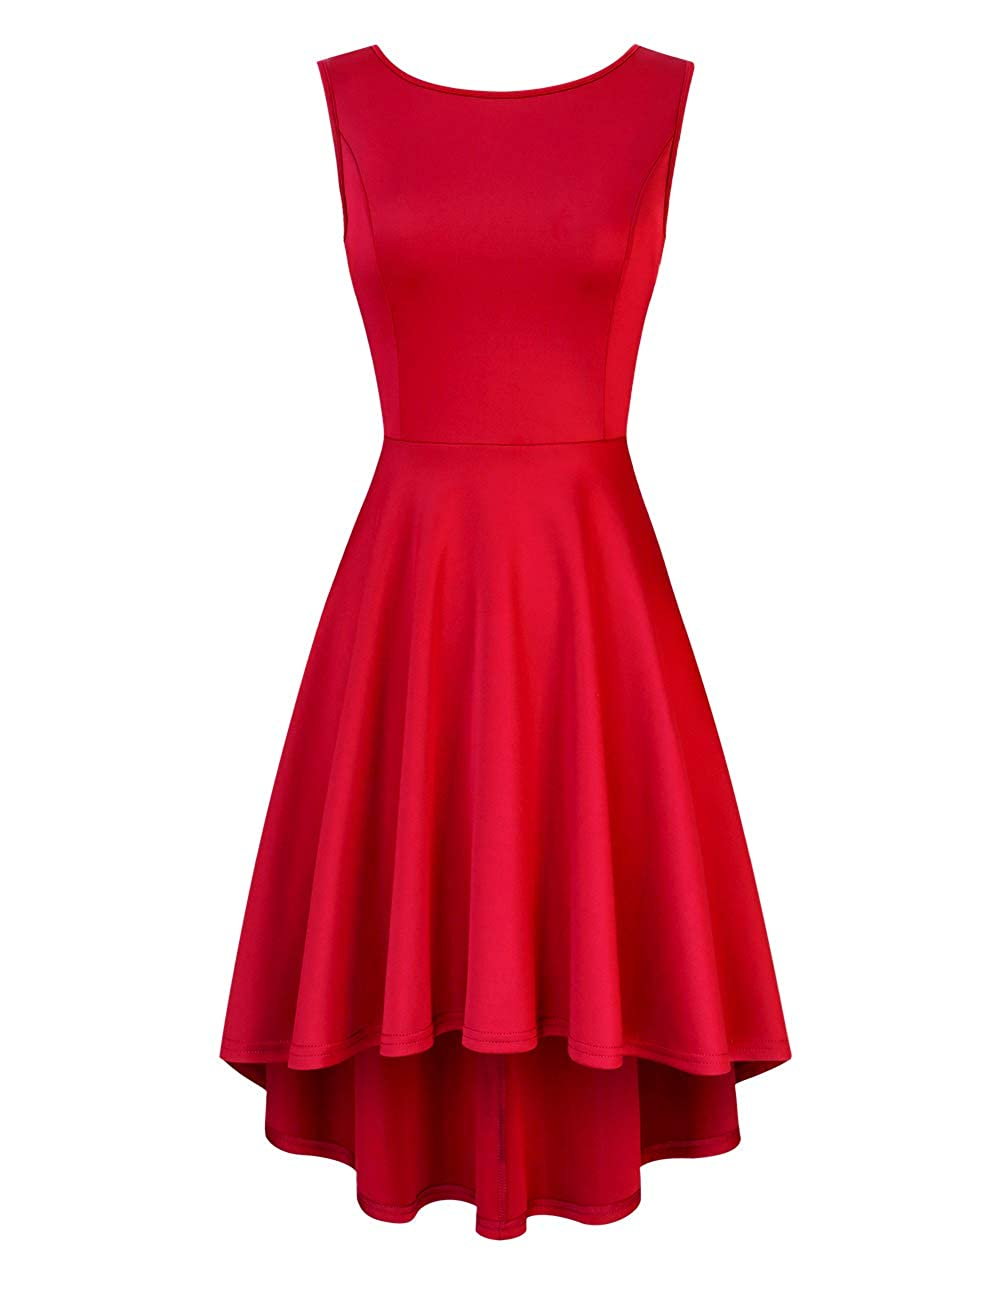 Clearlove Womens Cocktail Dress Elegant Evening Swing Party Dress